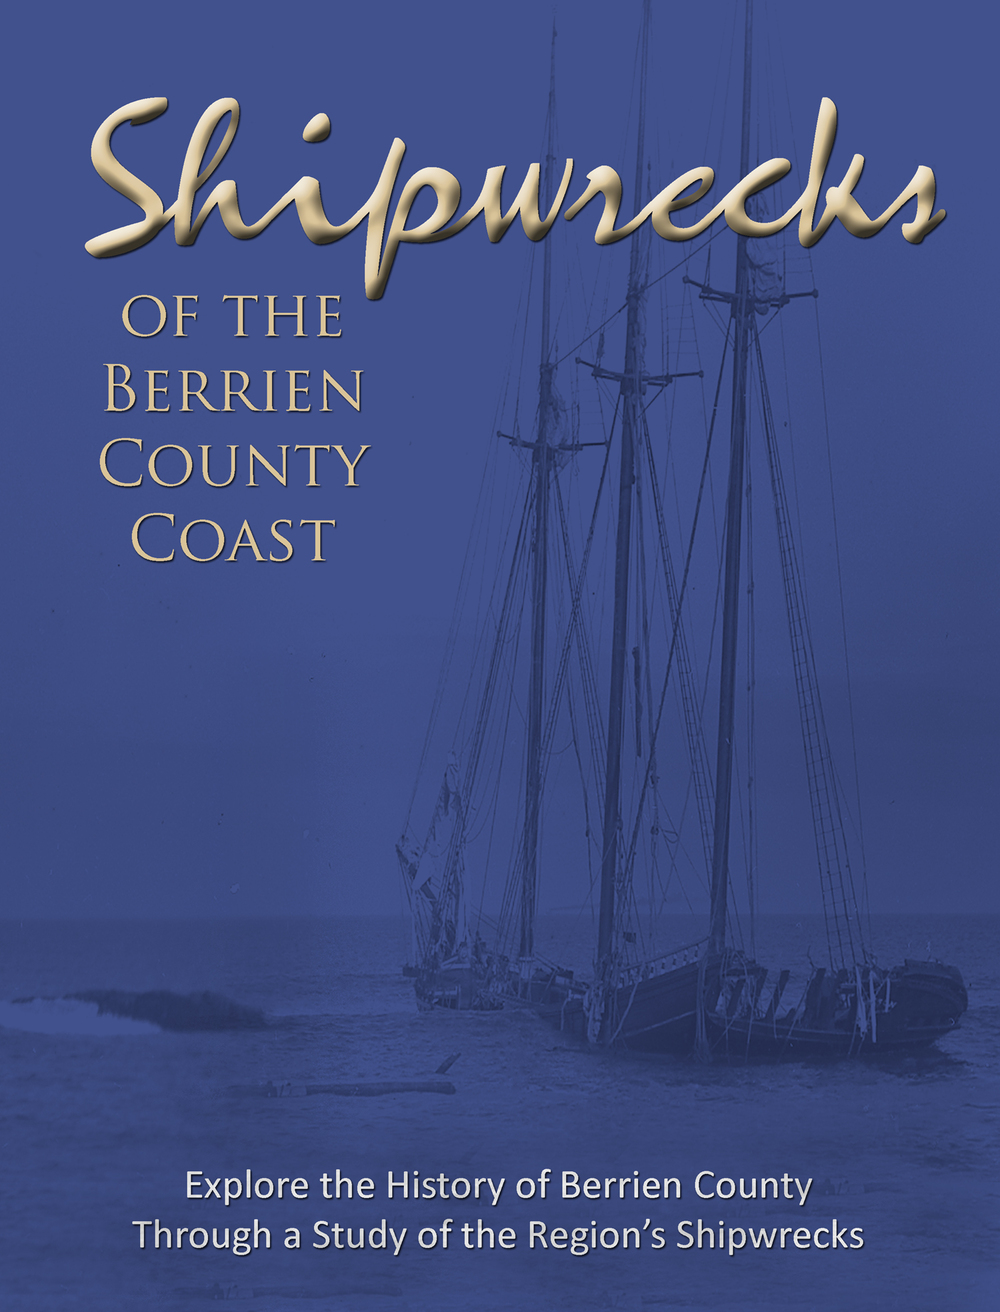 ShipwrecksBerrienCountyCoastExhibit-WebsiteGraphic_ original.jpg